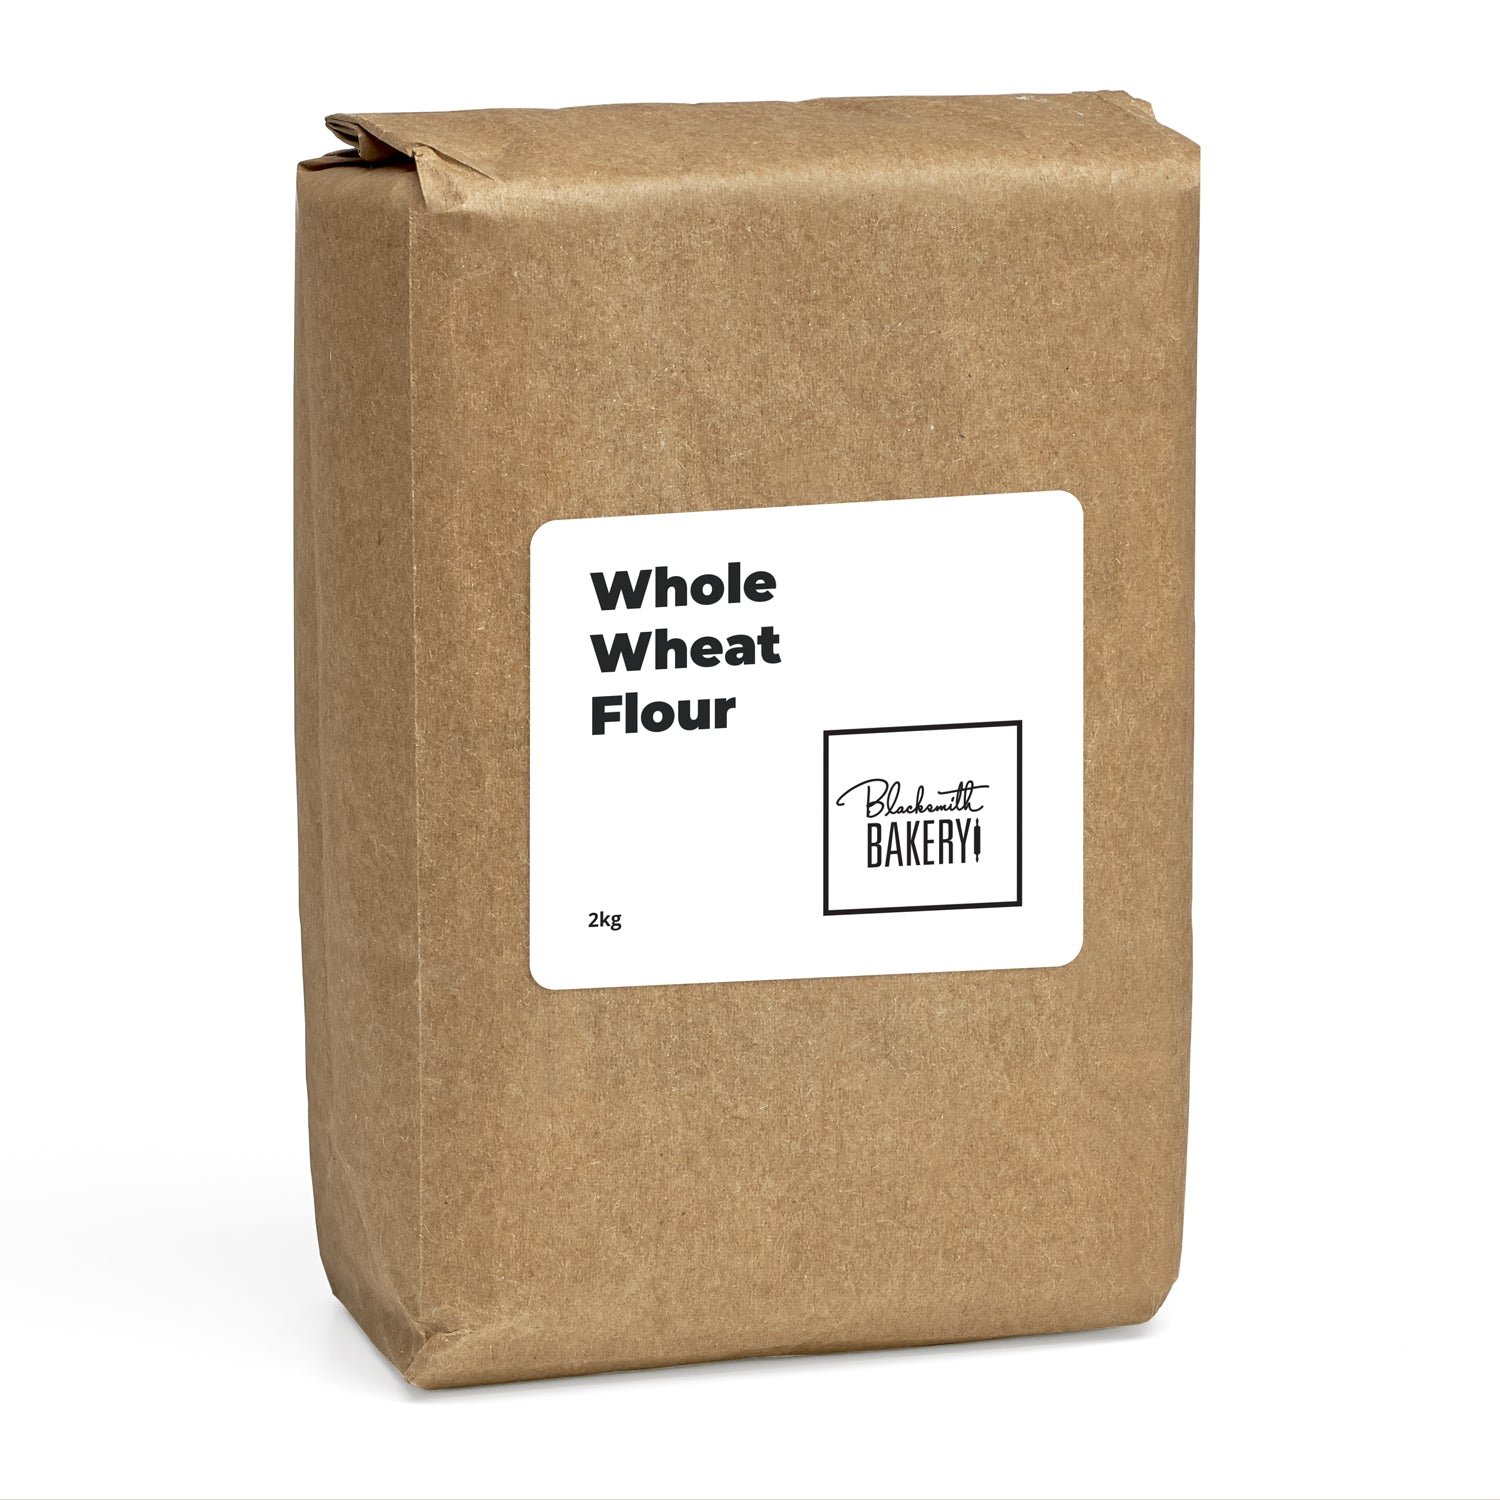 Whole Wheat Flour - 2kg